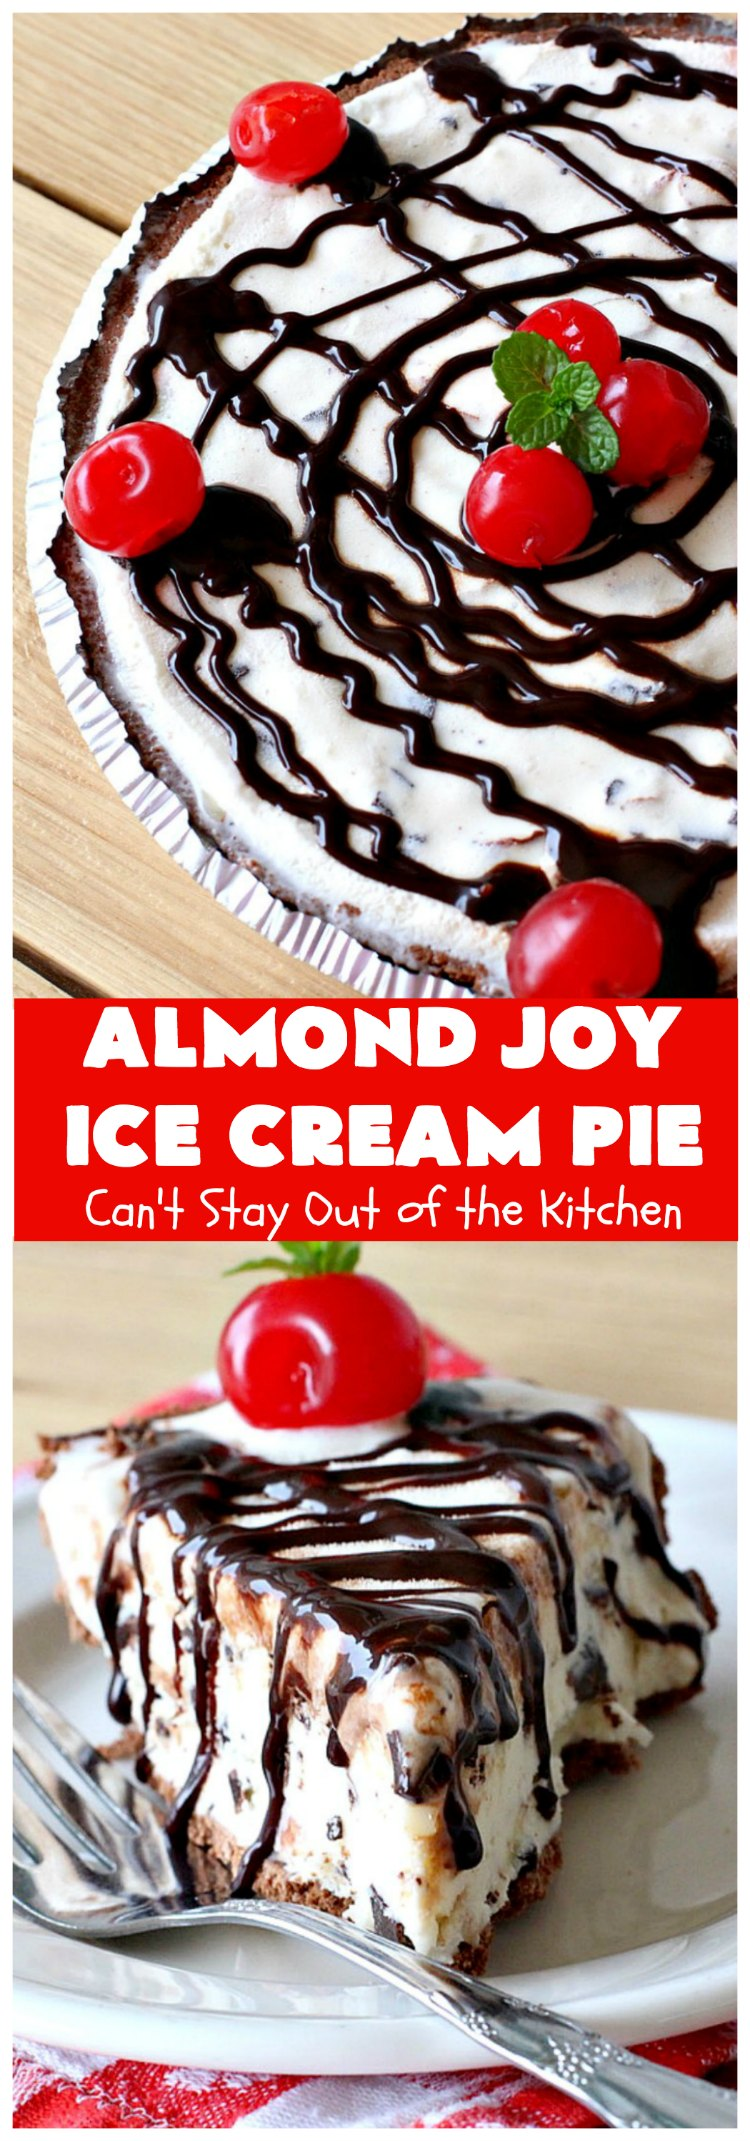 Almond Joy Ice Cream Pie | Can't Stay Out of the Kitchen | this spectacular 4-ingredient #recipe will knock your socks off! It's the ultimate #dessert for #ValentinesDay or other special occasions. It tastes like eating #AlmondJoyBars but in #IceCream form! #AlmondJoyDessert #ChocolateDessert #IceCreamDessert #HolidayDessert #EasterDessert #ValentinesDayDessert #coconut #almonds #chocolate #AlmondJoyIceCreamPie